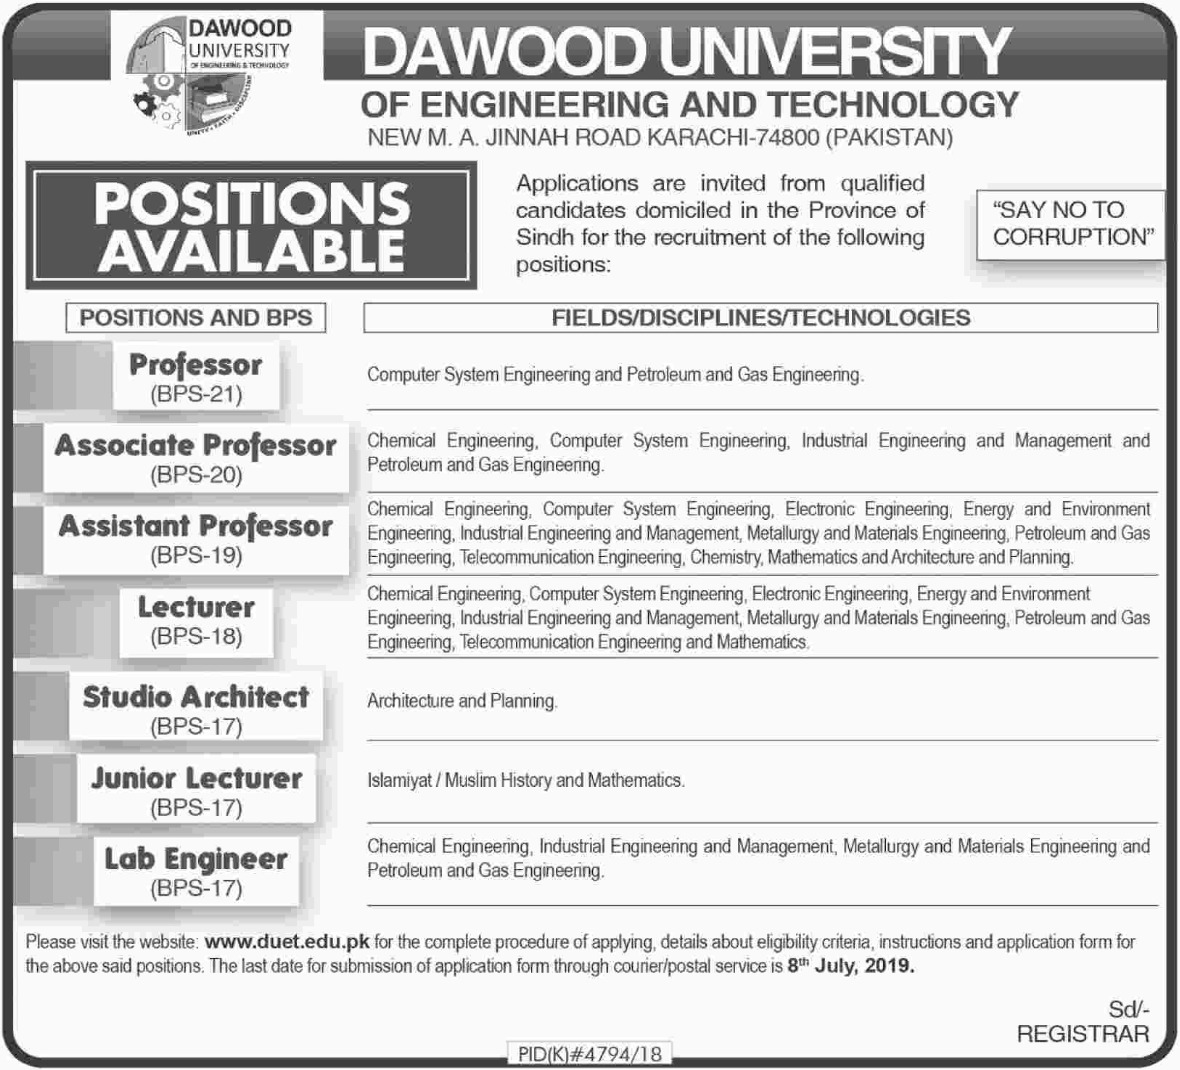 Dawood University of Engineering & Technology Karachi Jobs 2019